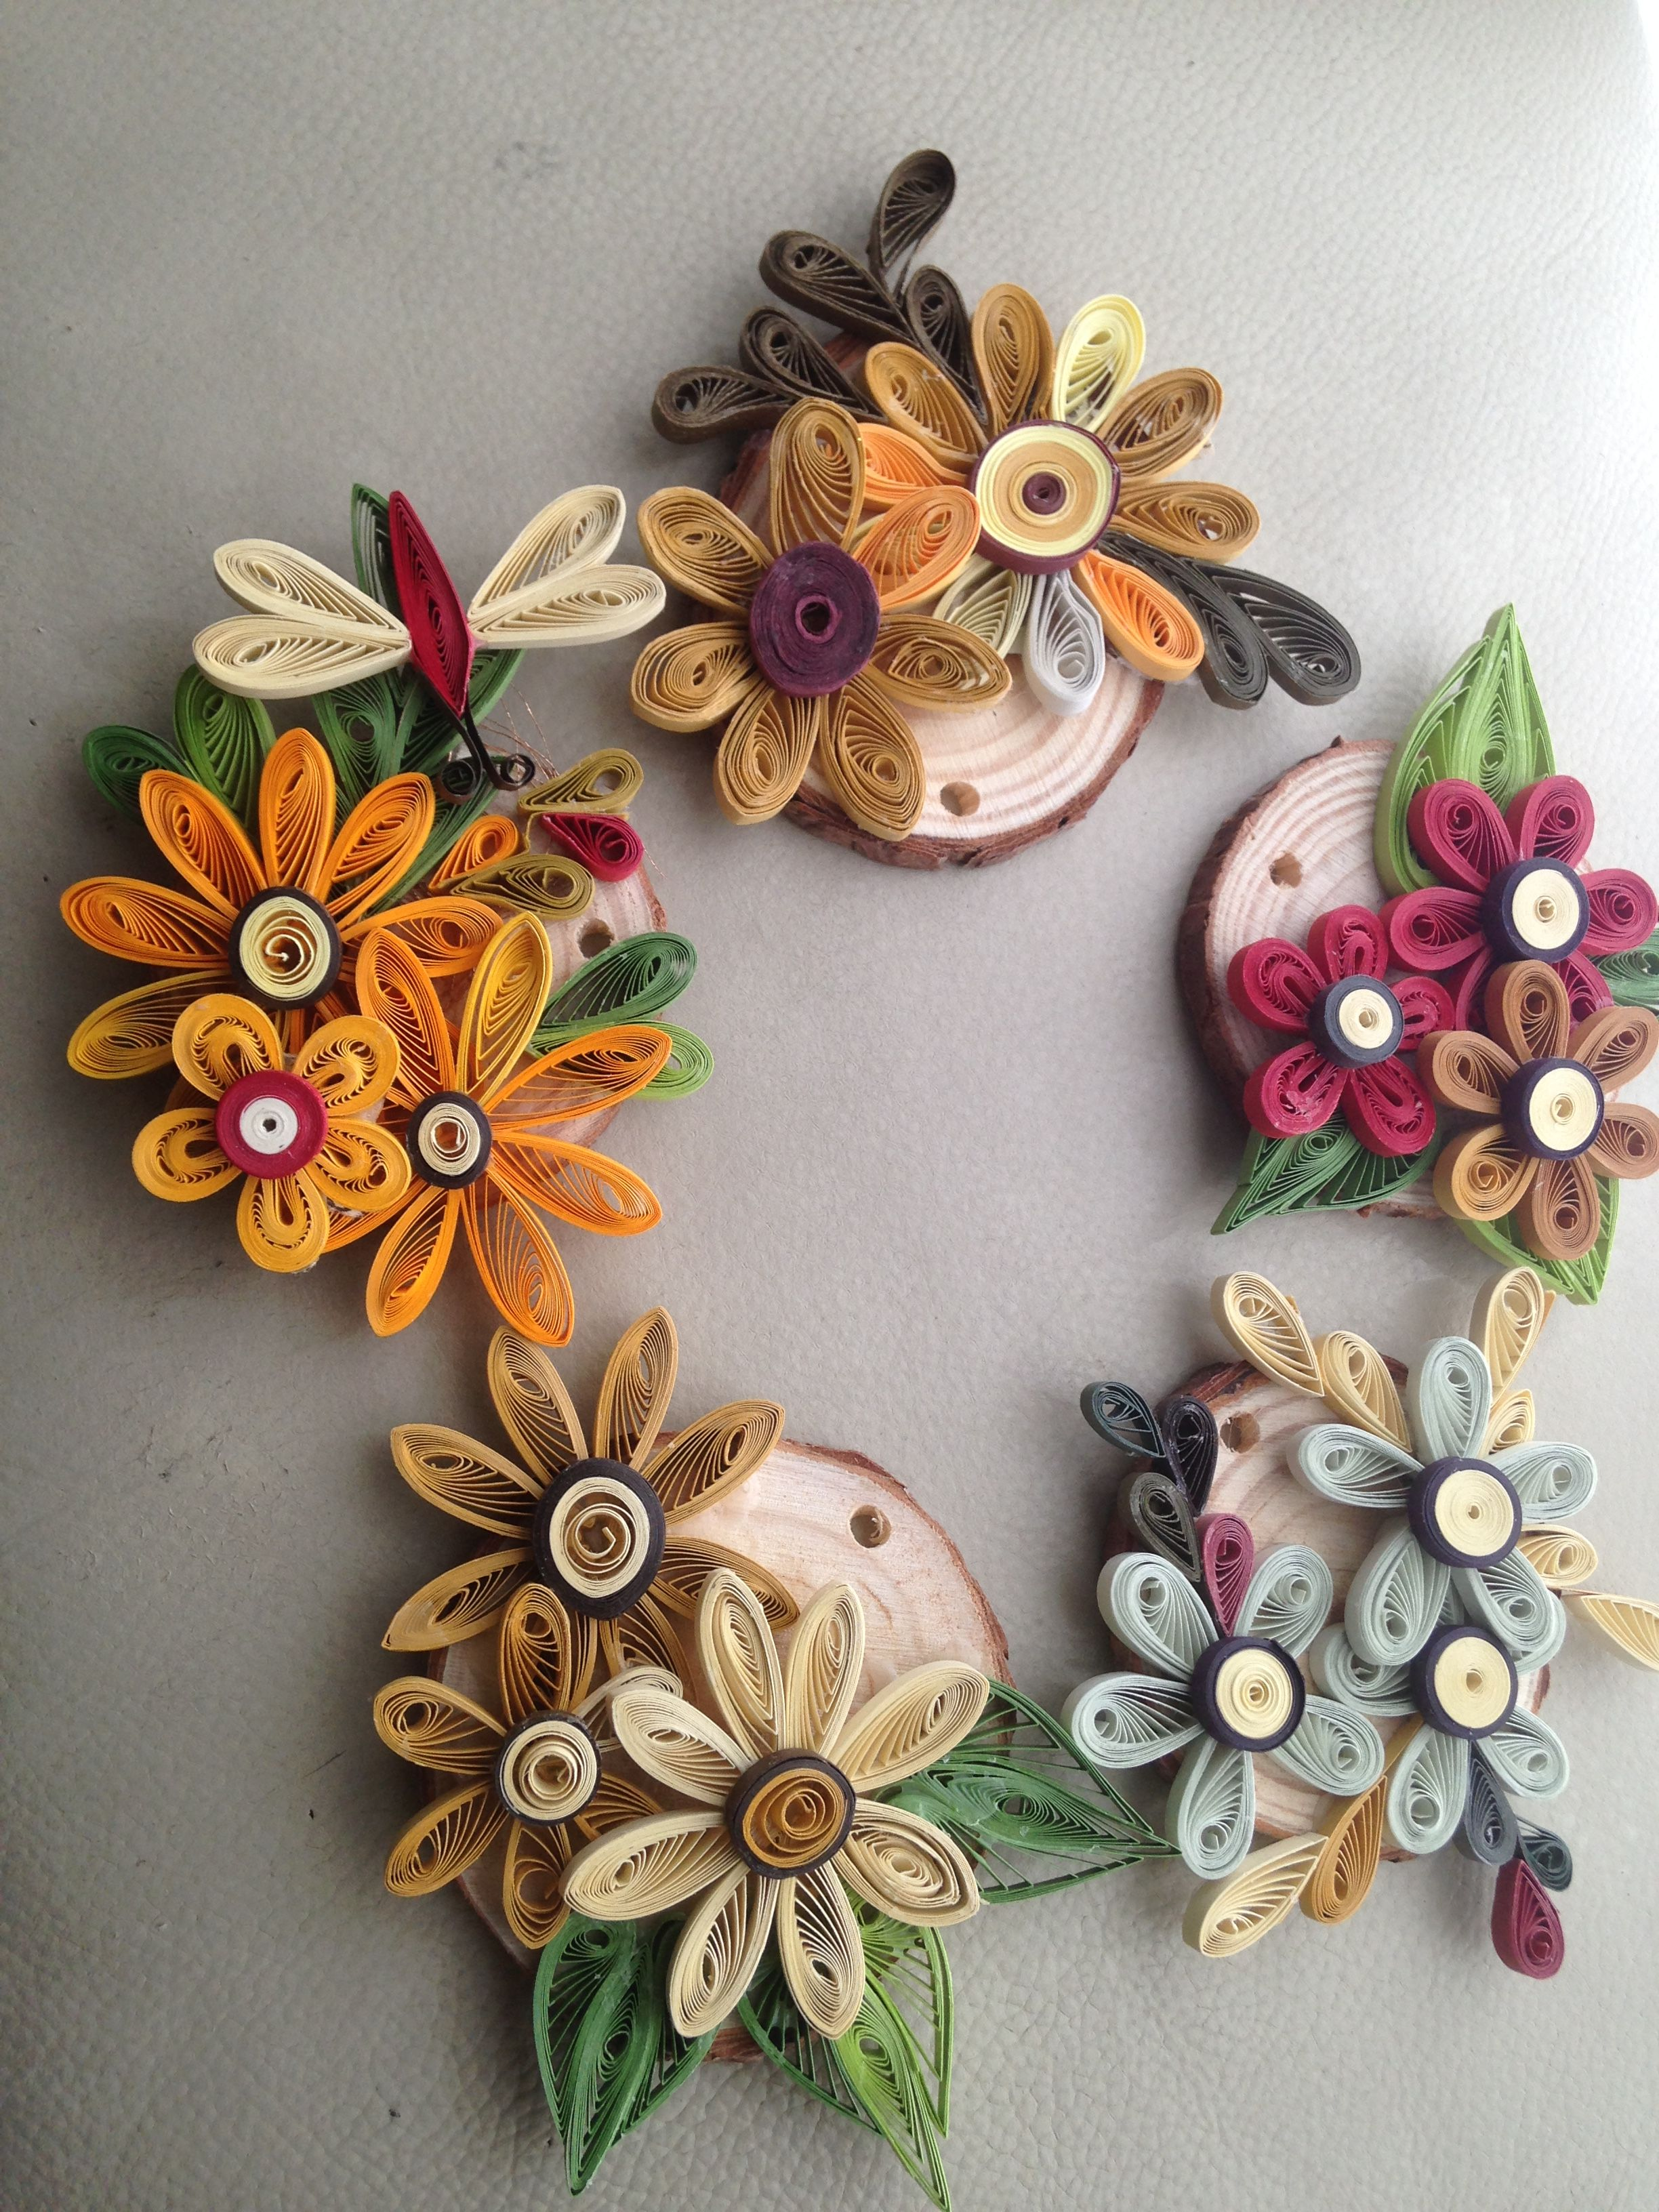 Pin By Linda Devaney On Art Of Quilling Pinterest Quilling